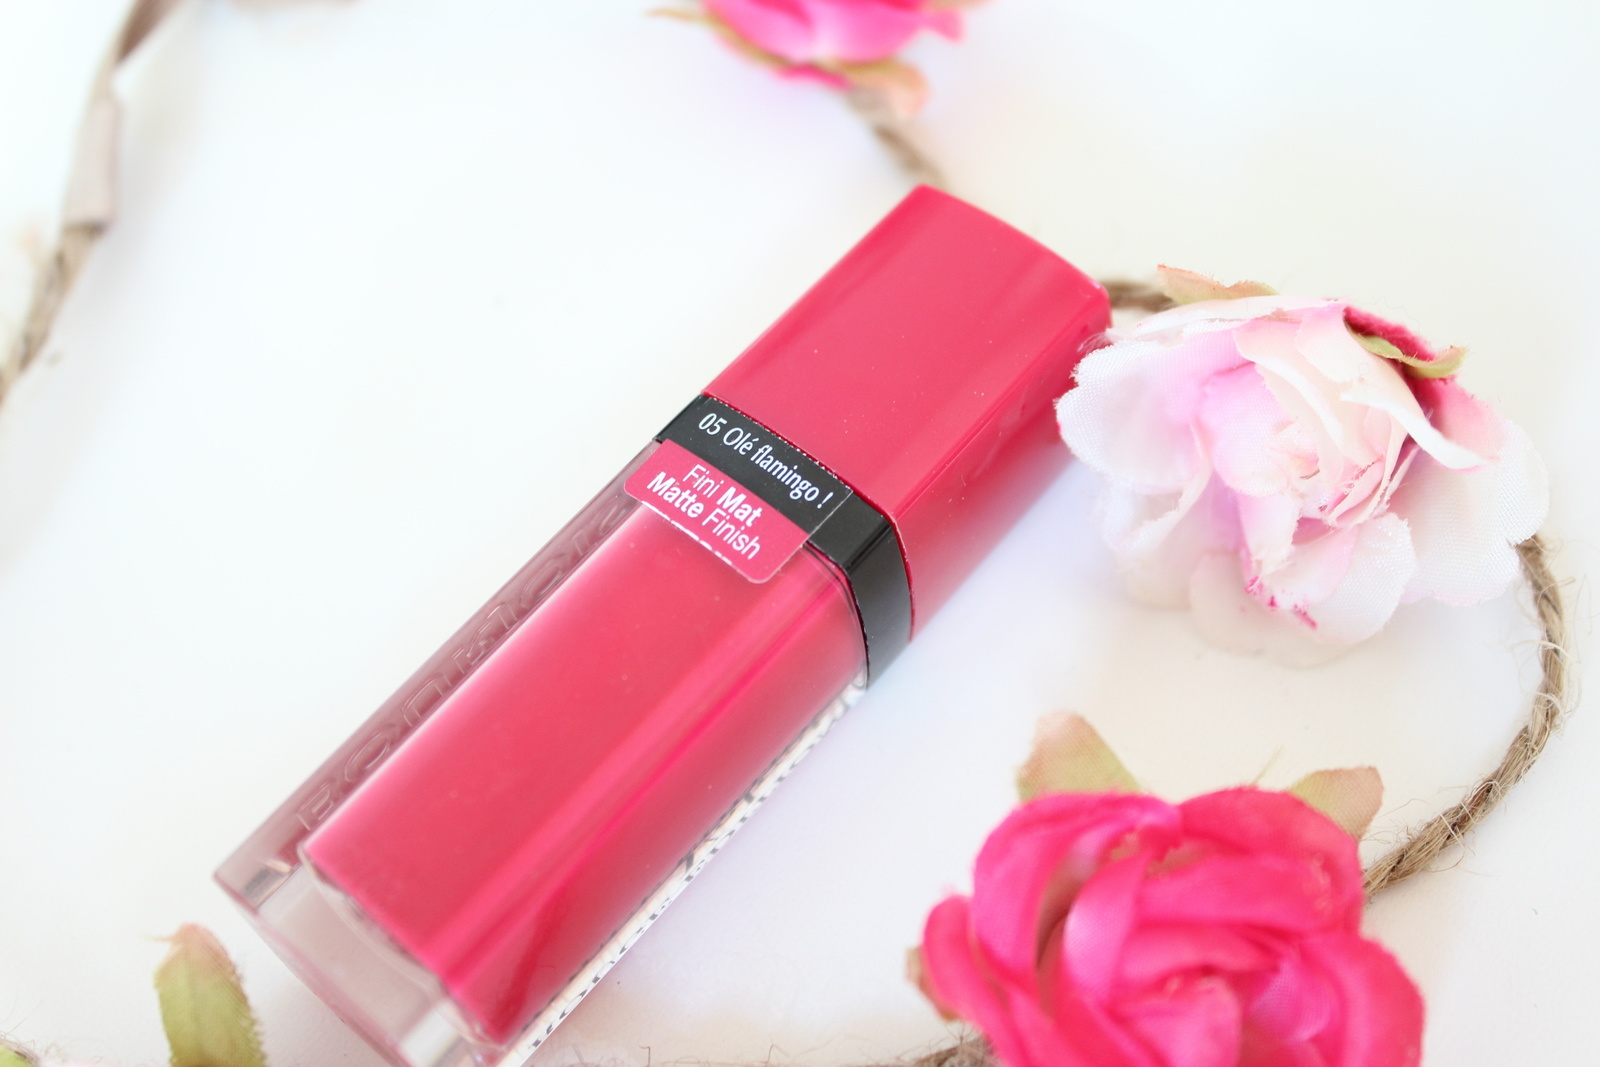 Rouge édition velvet ♡ Jumbo Colorburst Revlon